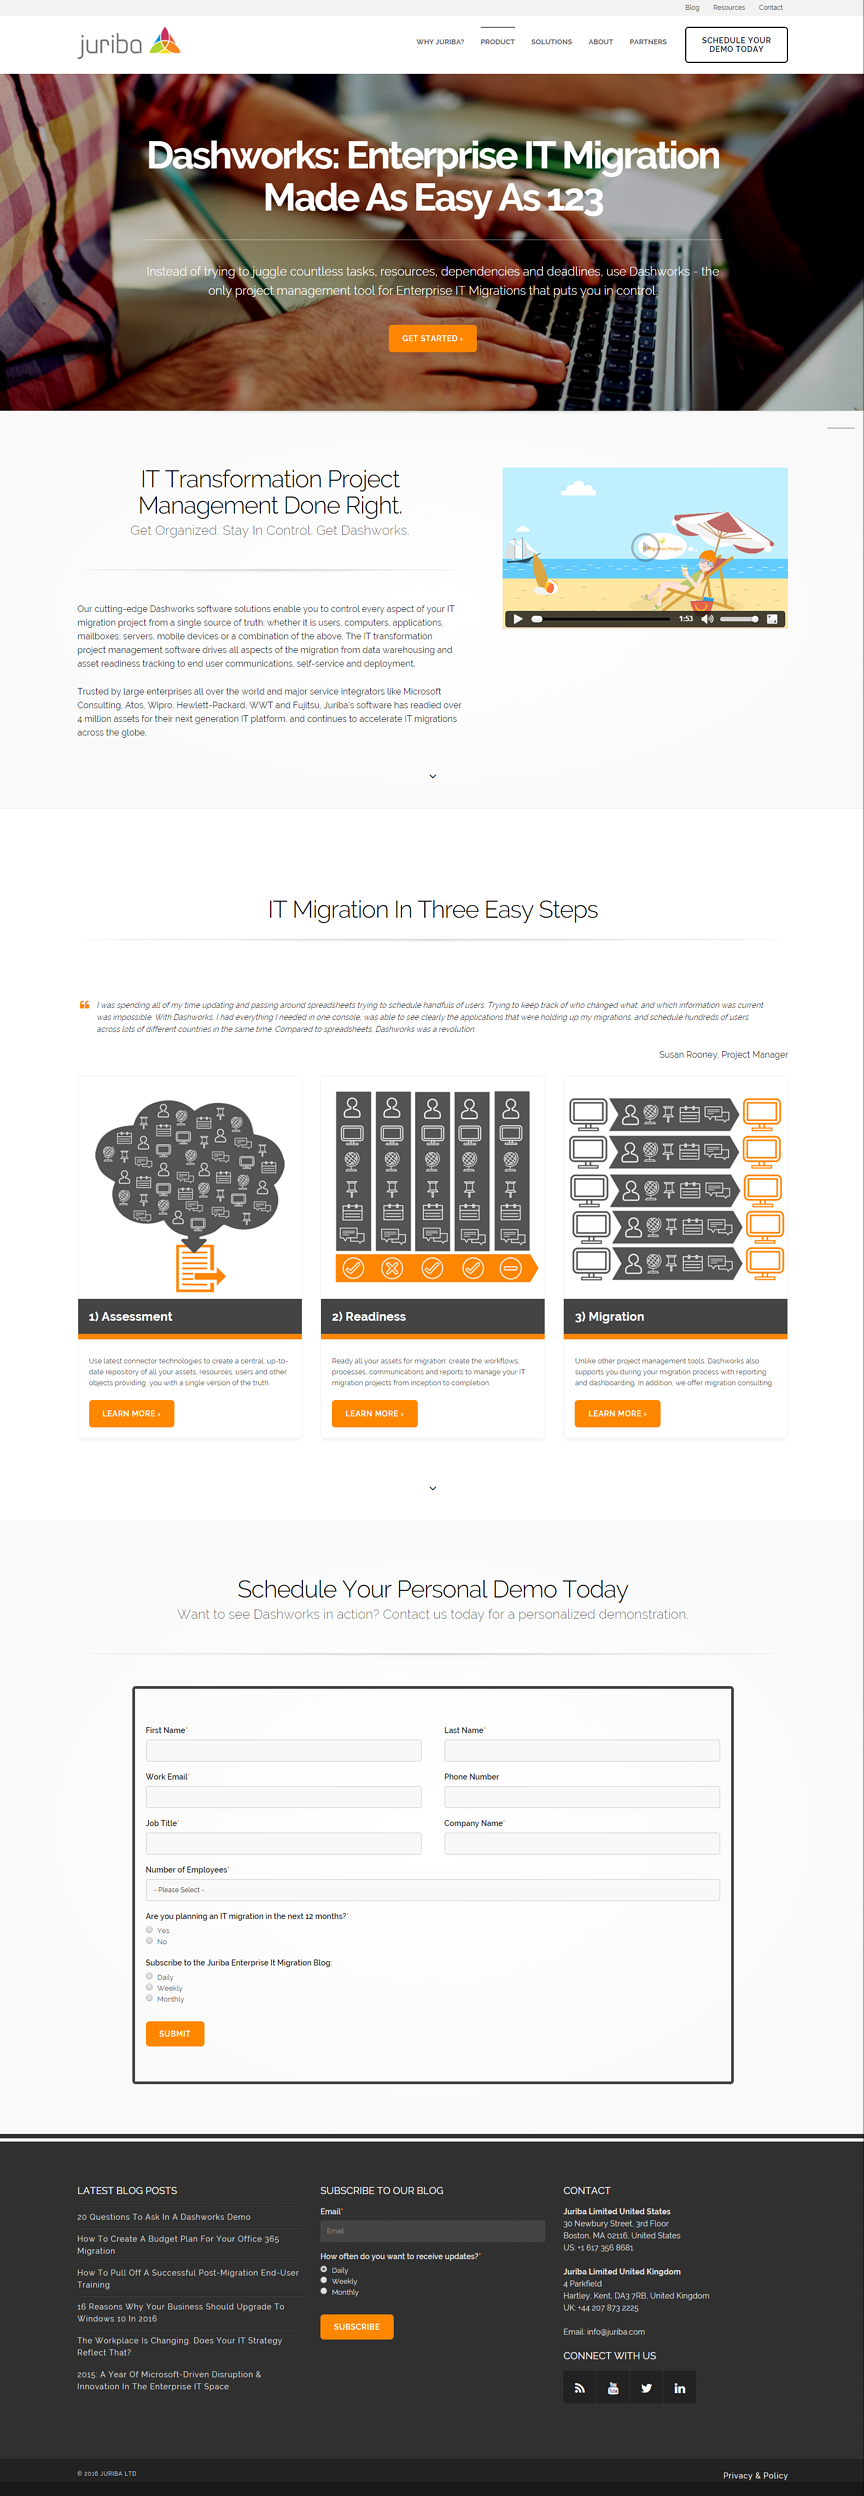 Dashworks___IT_Migration_Project_Management.png